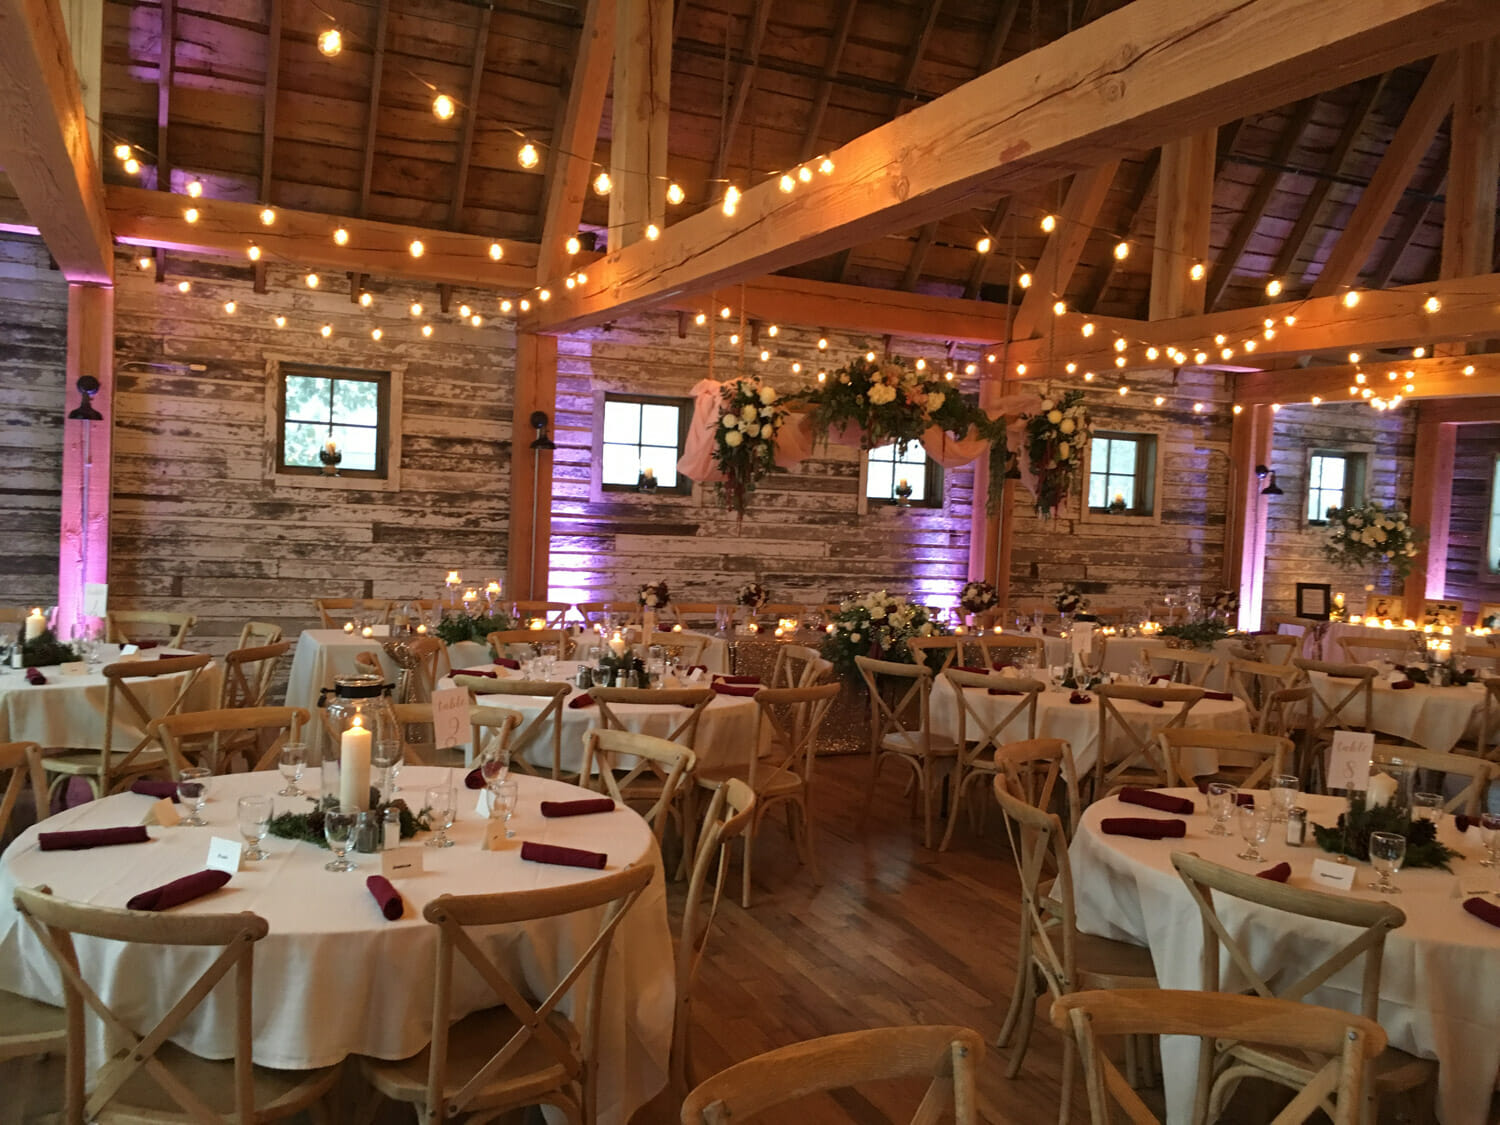 Event lighting by Pro Sound & Light Show at Gathered Oaks Barn